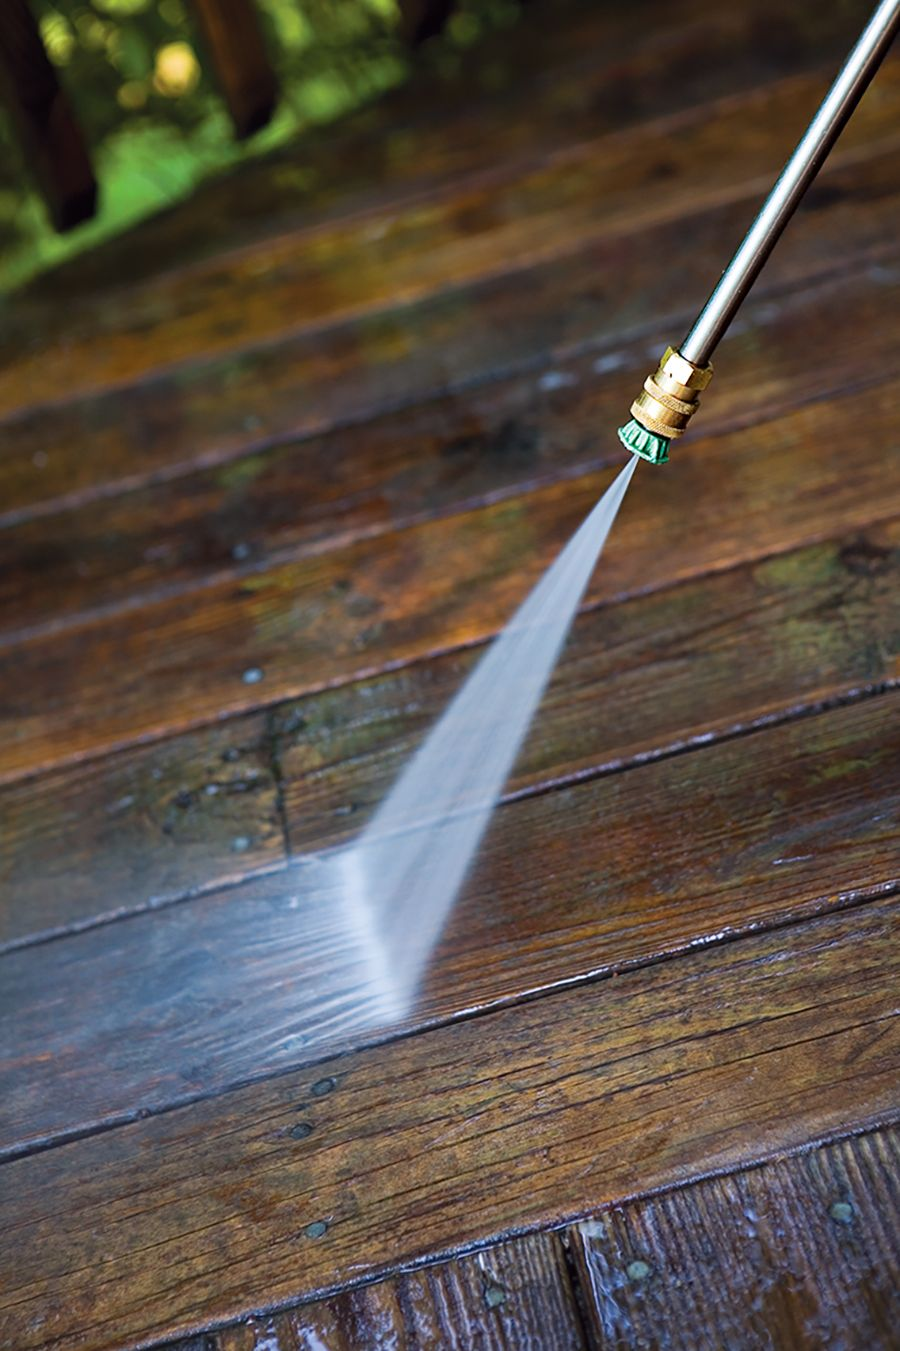 Bi Level Deck Home Design Ideas Pictures Remodel And Decor: How To Spruce Up A Worn Out Deck